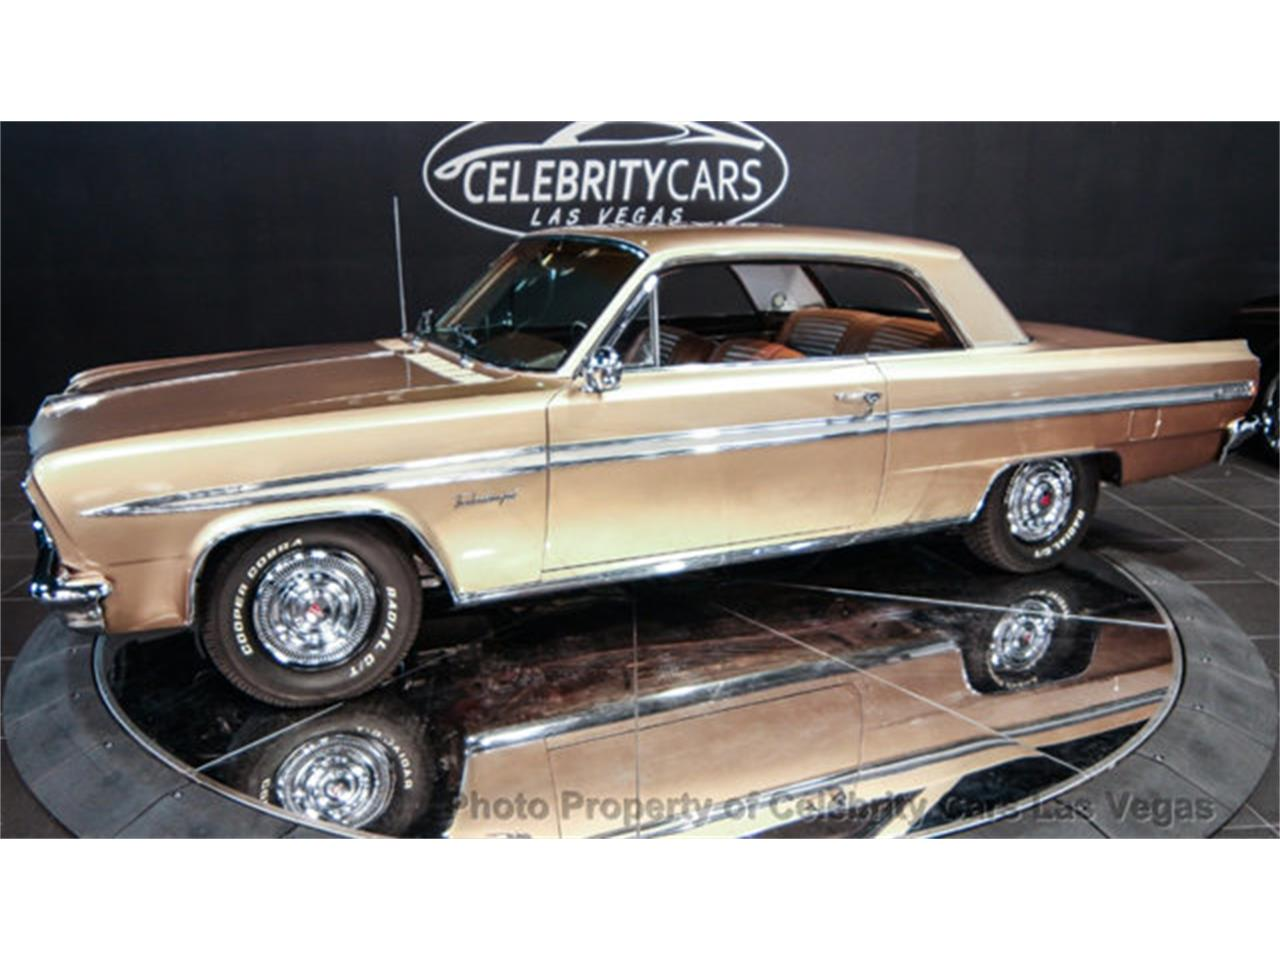 Large Picture of Classic '63 Oldsmobile Jet fire Turbocharged - $61,500.00 Offered by Celebrity Cars Las Vegas - J98V